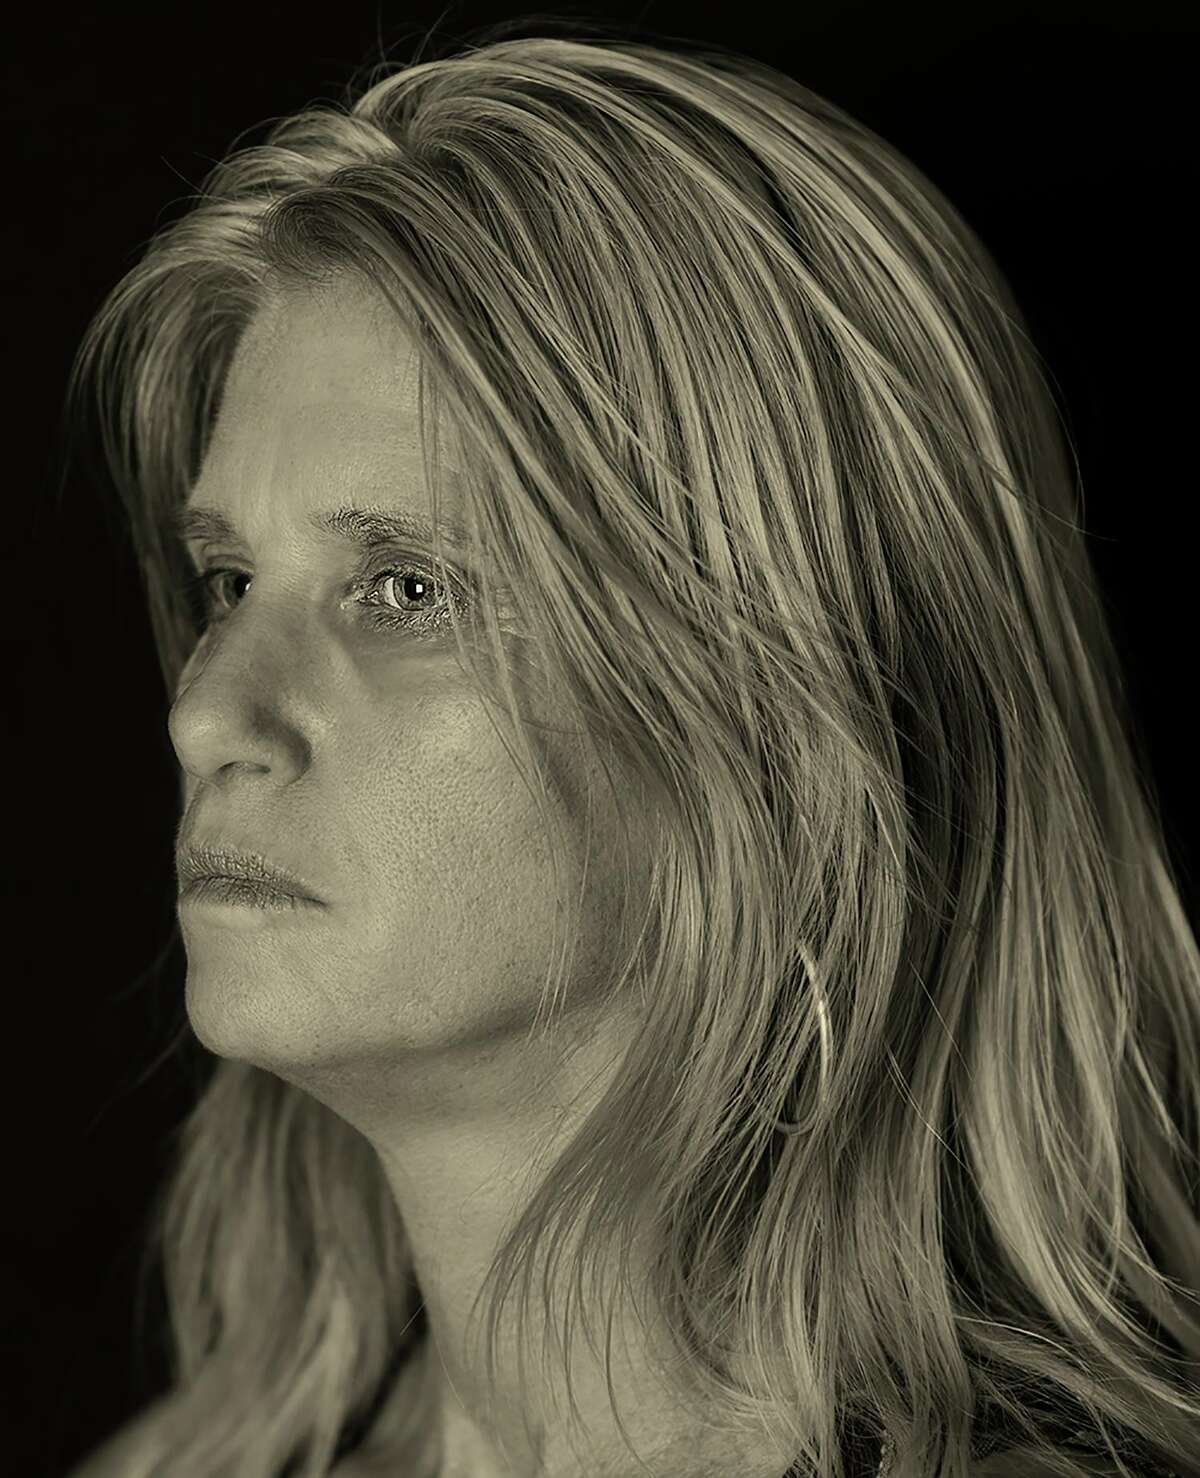 """Katie Pell, who died Saturday, was one of the artists that photographer Ramin Samandari's featured in his """"San Antonio Faces of Art"""" portrait series."""